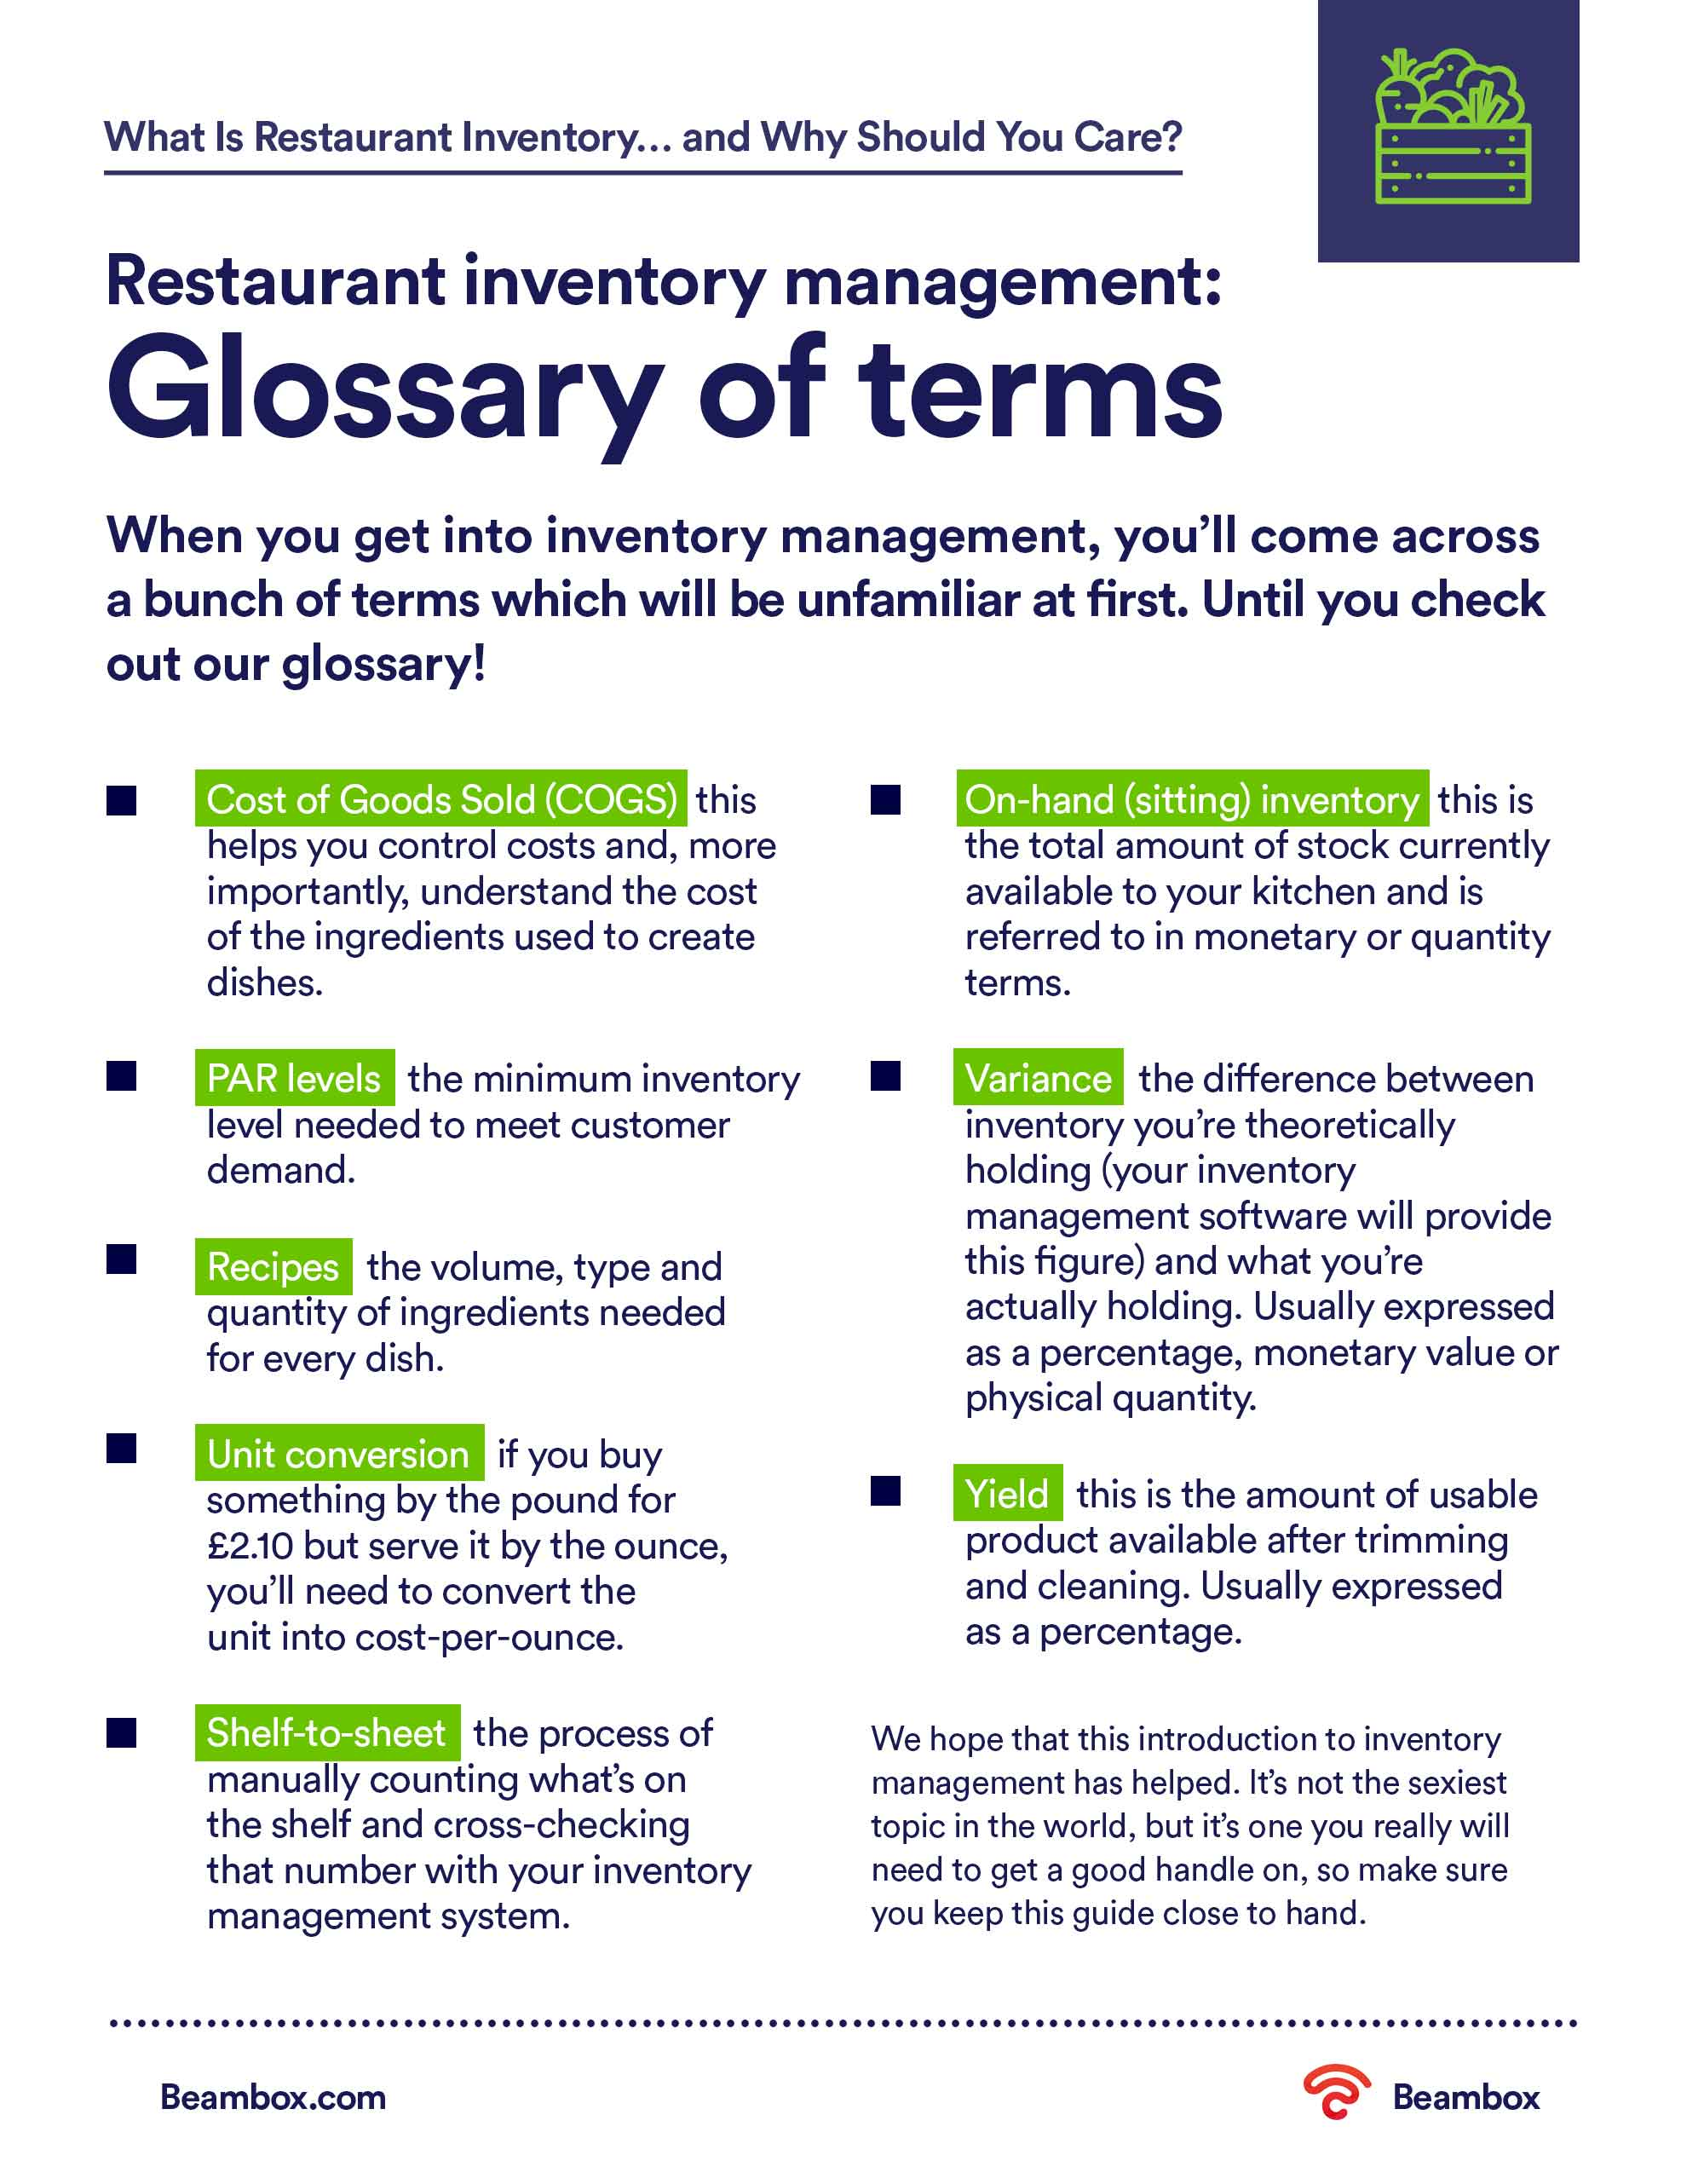 Restaurant-inventory-management---Glossary-of-terms